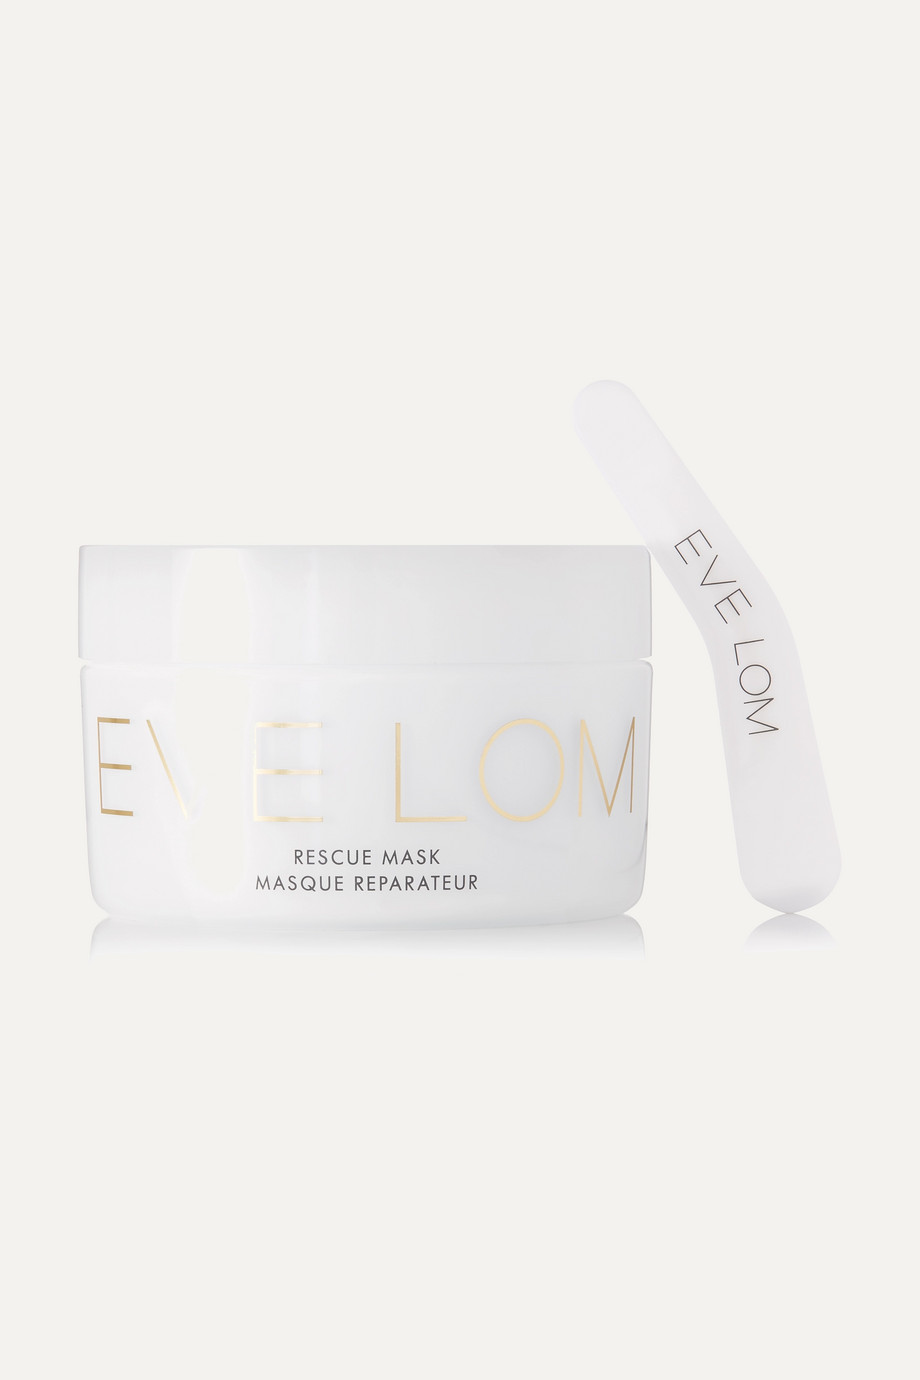 Eve Lom Rescue Mask, 100ml